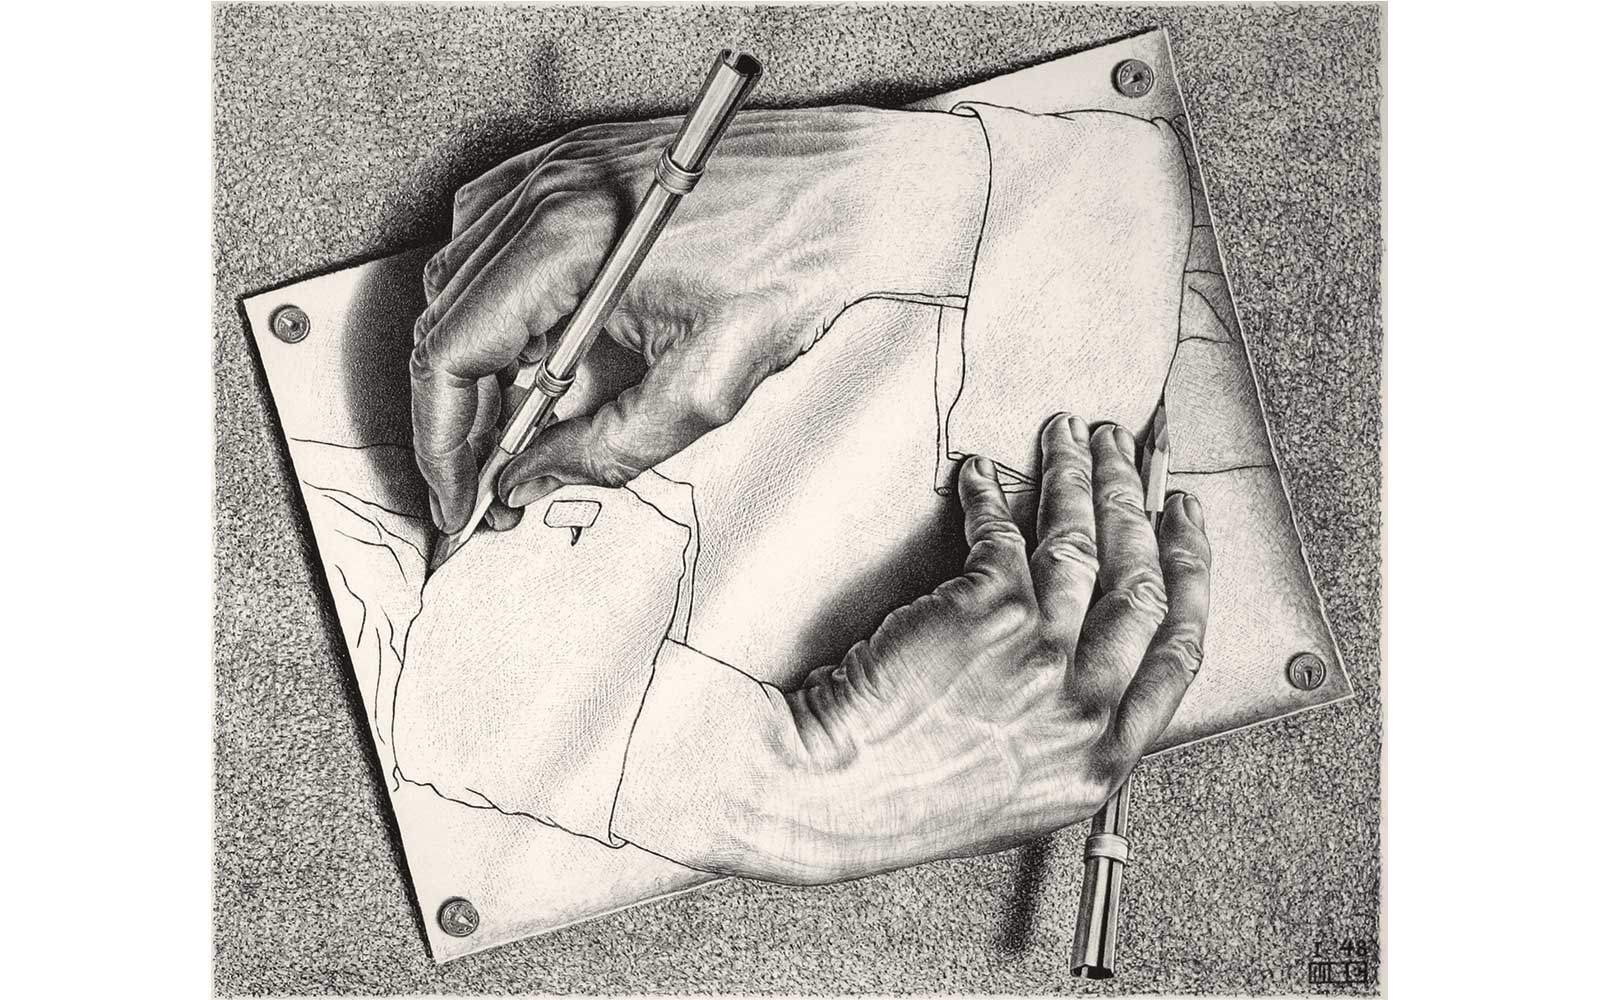 Darwing Hands, by M.C. Escher